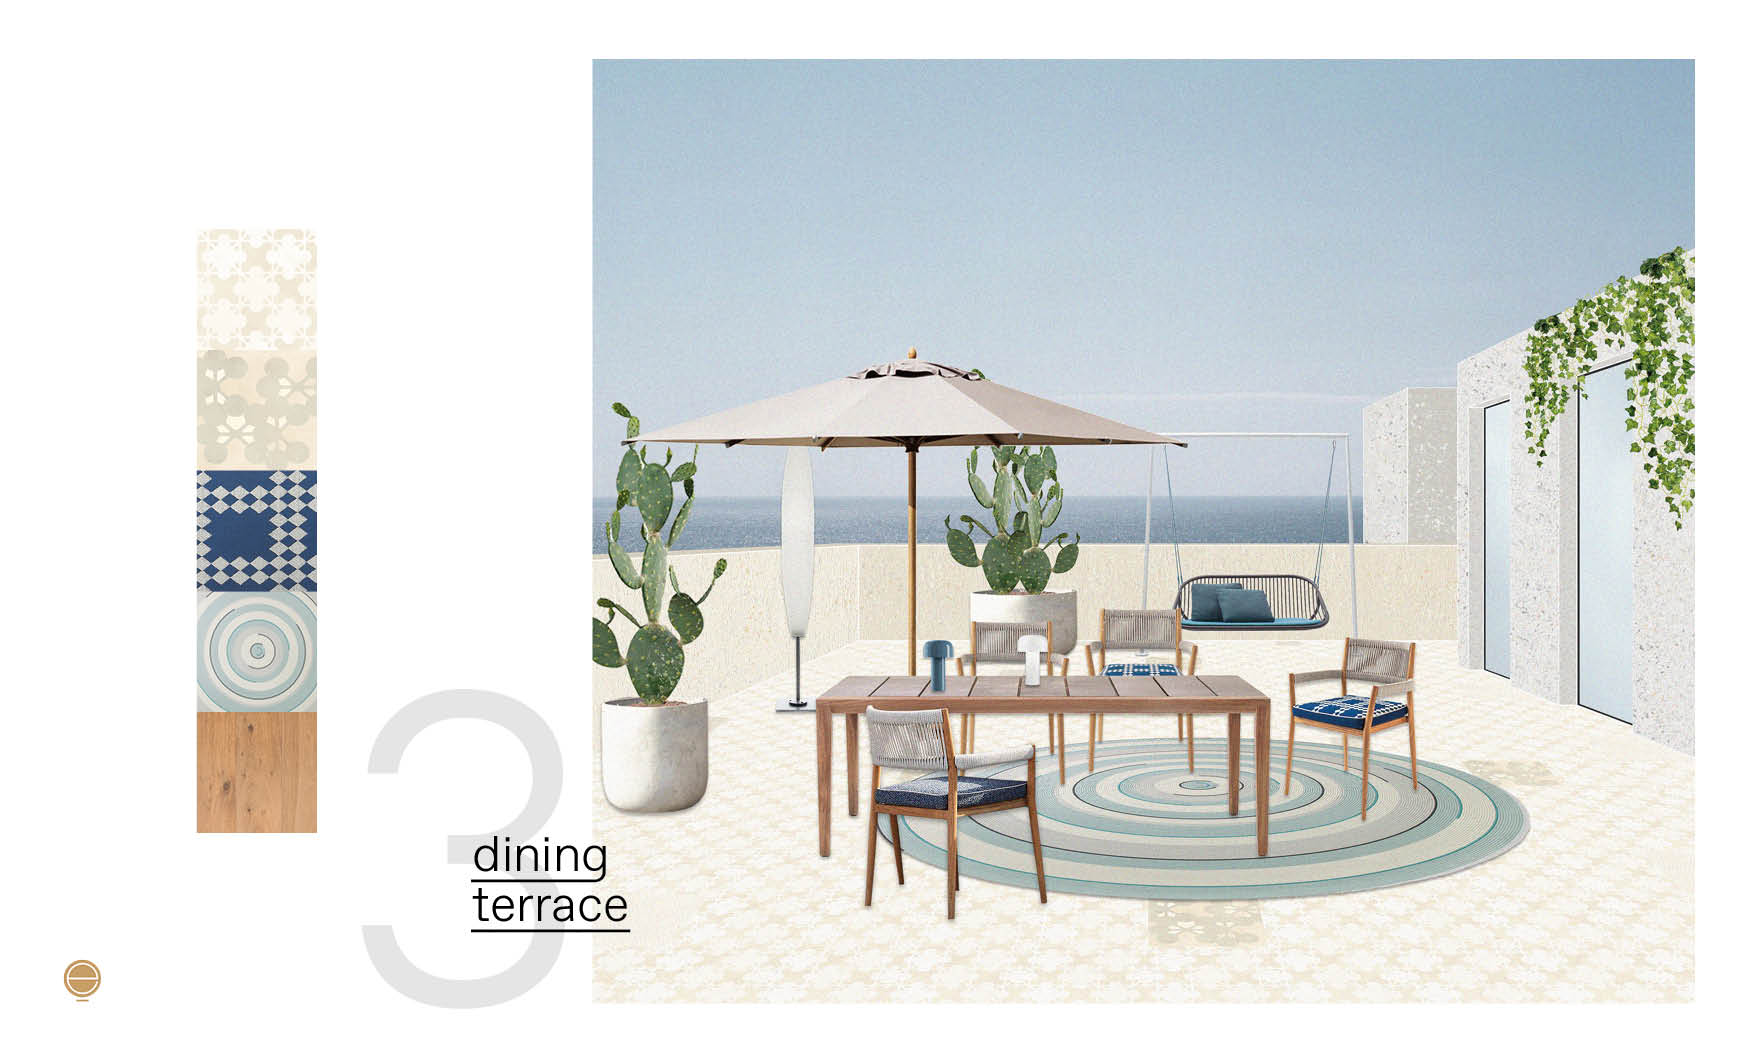 luxury patio design with dining outdoor furniture made by esperiri team